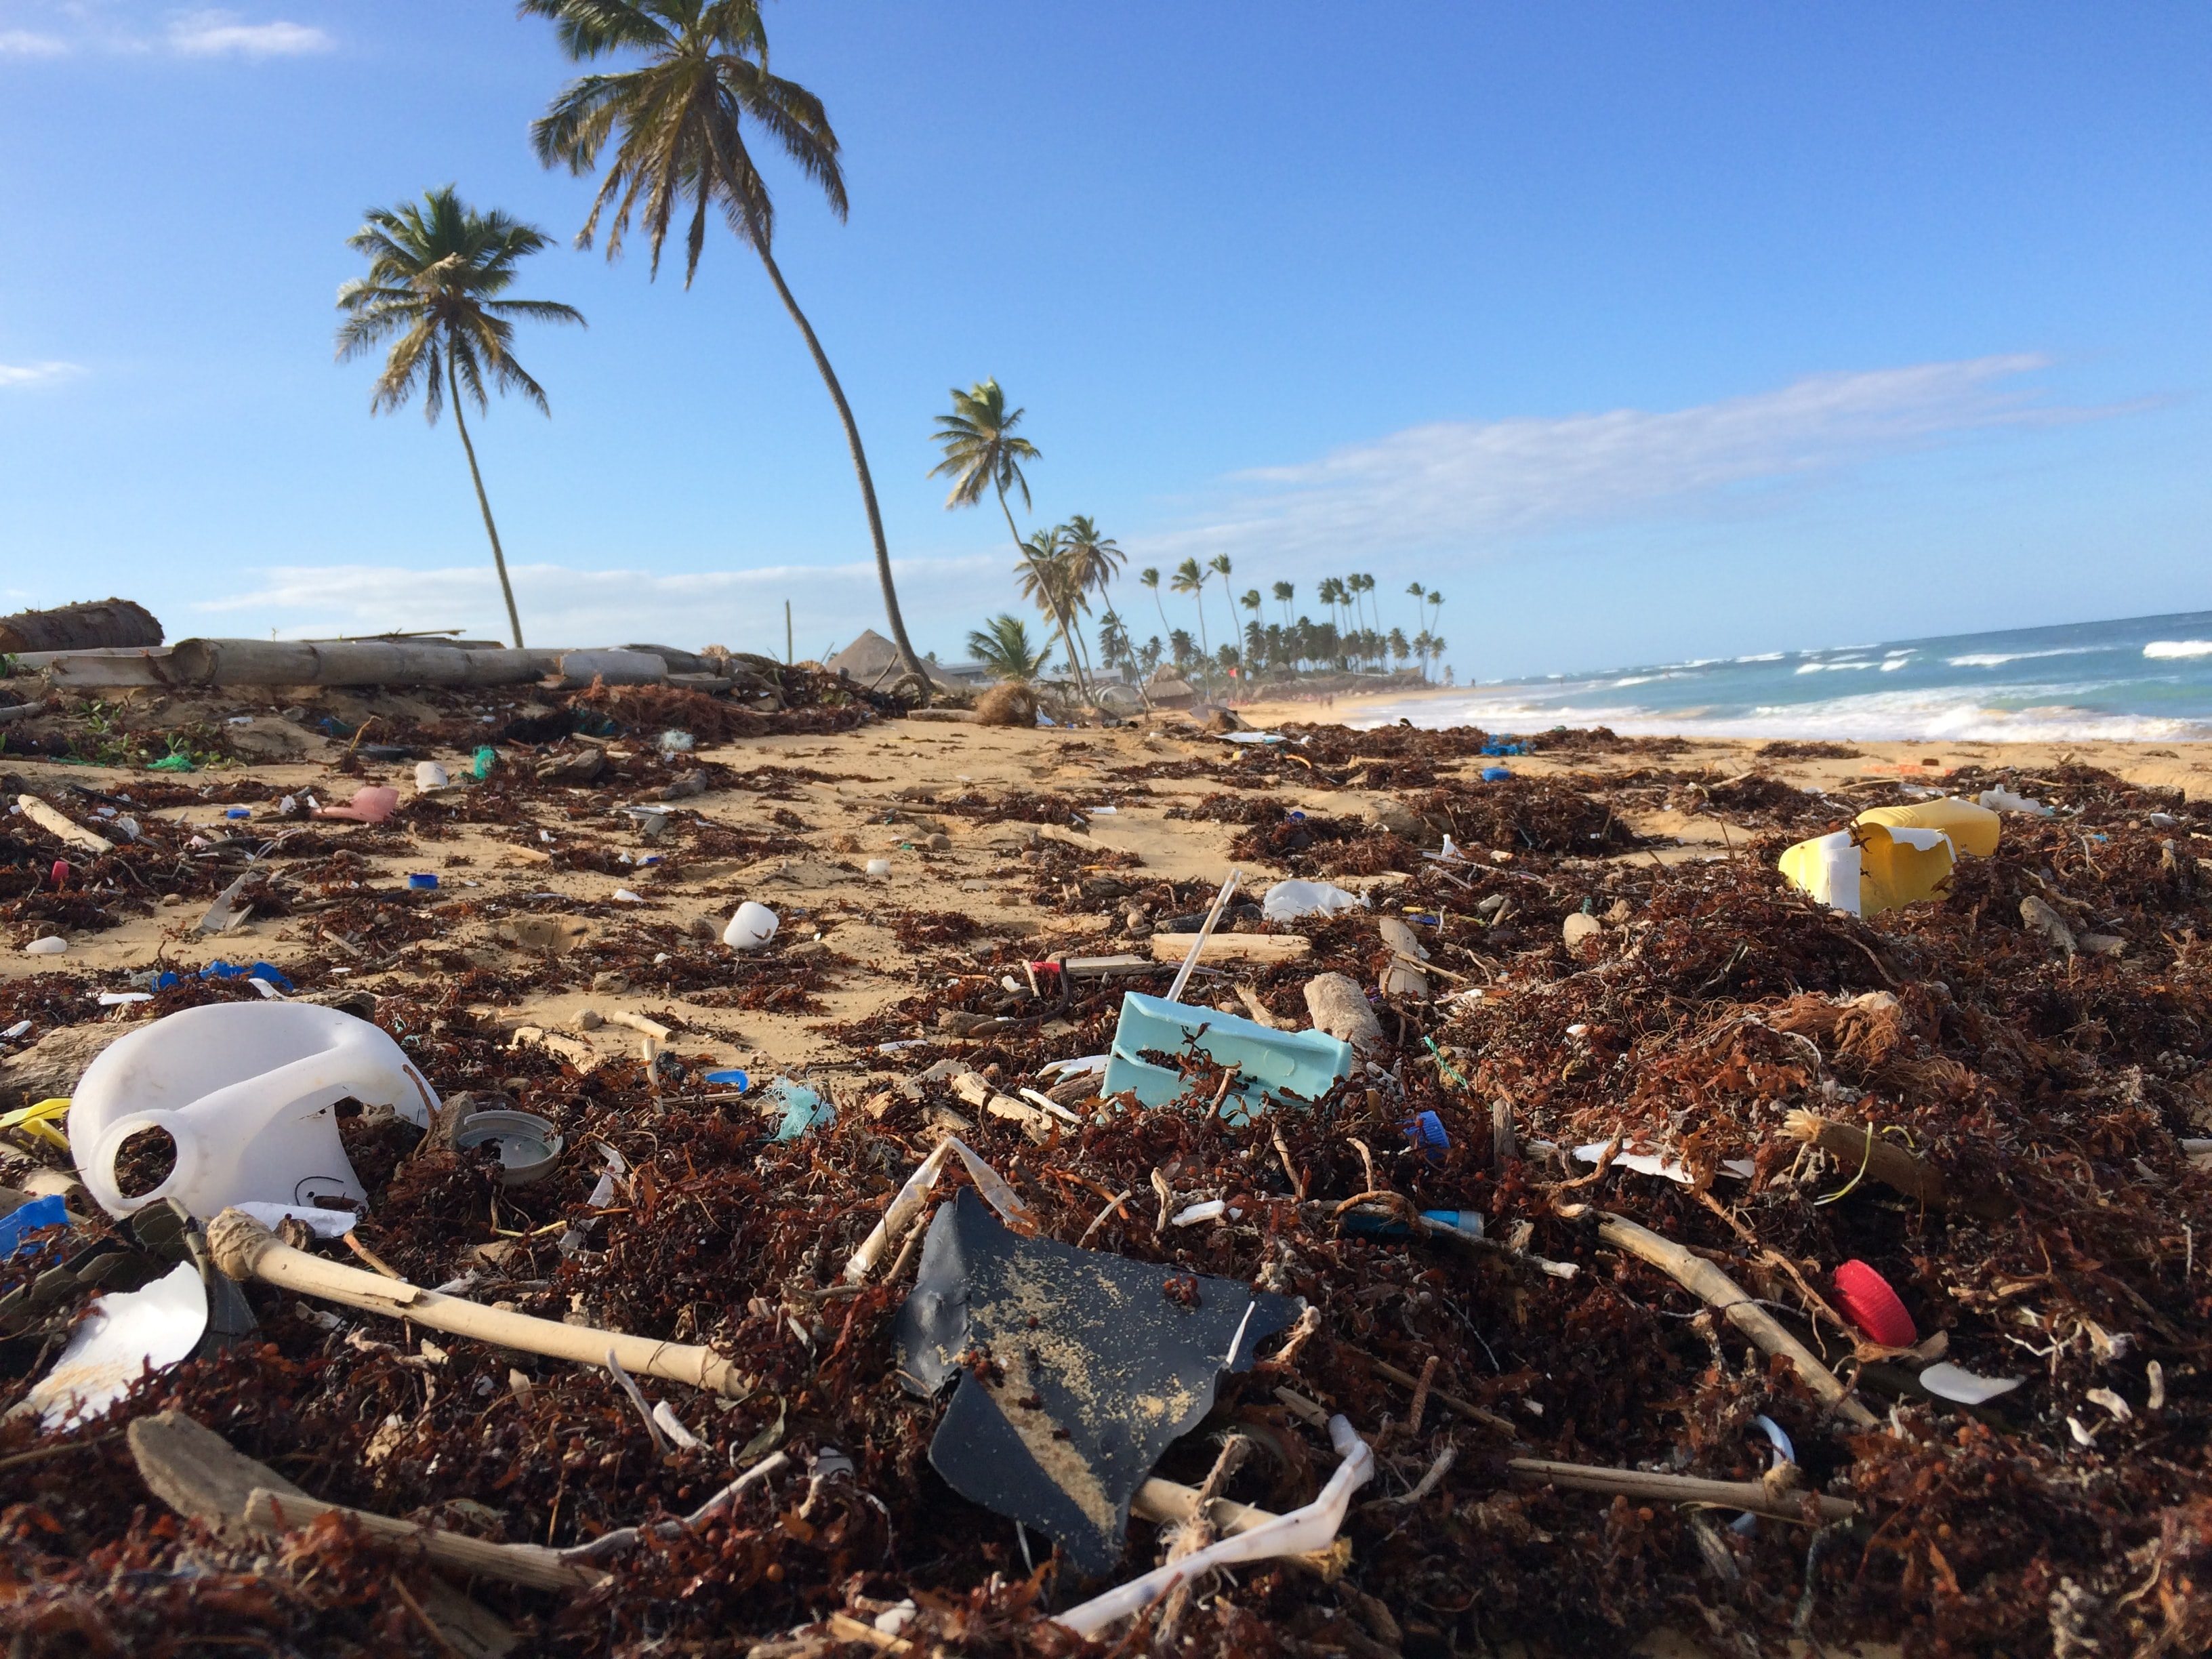 Using Artificial Intelligence to track ocean plastic